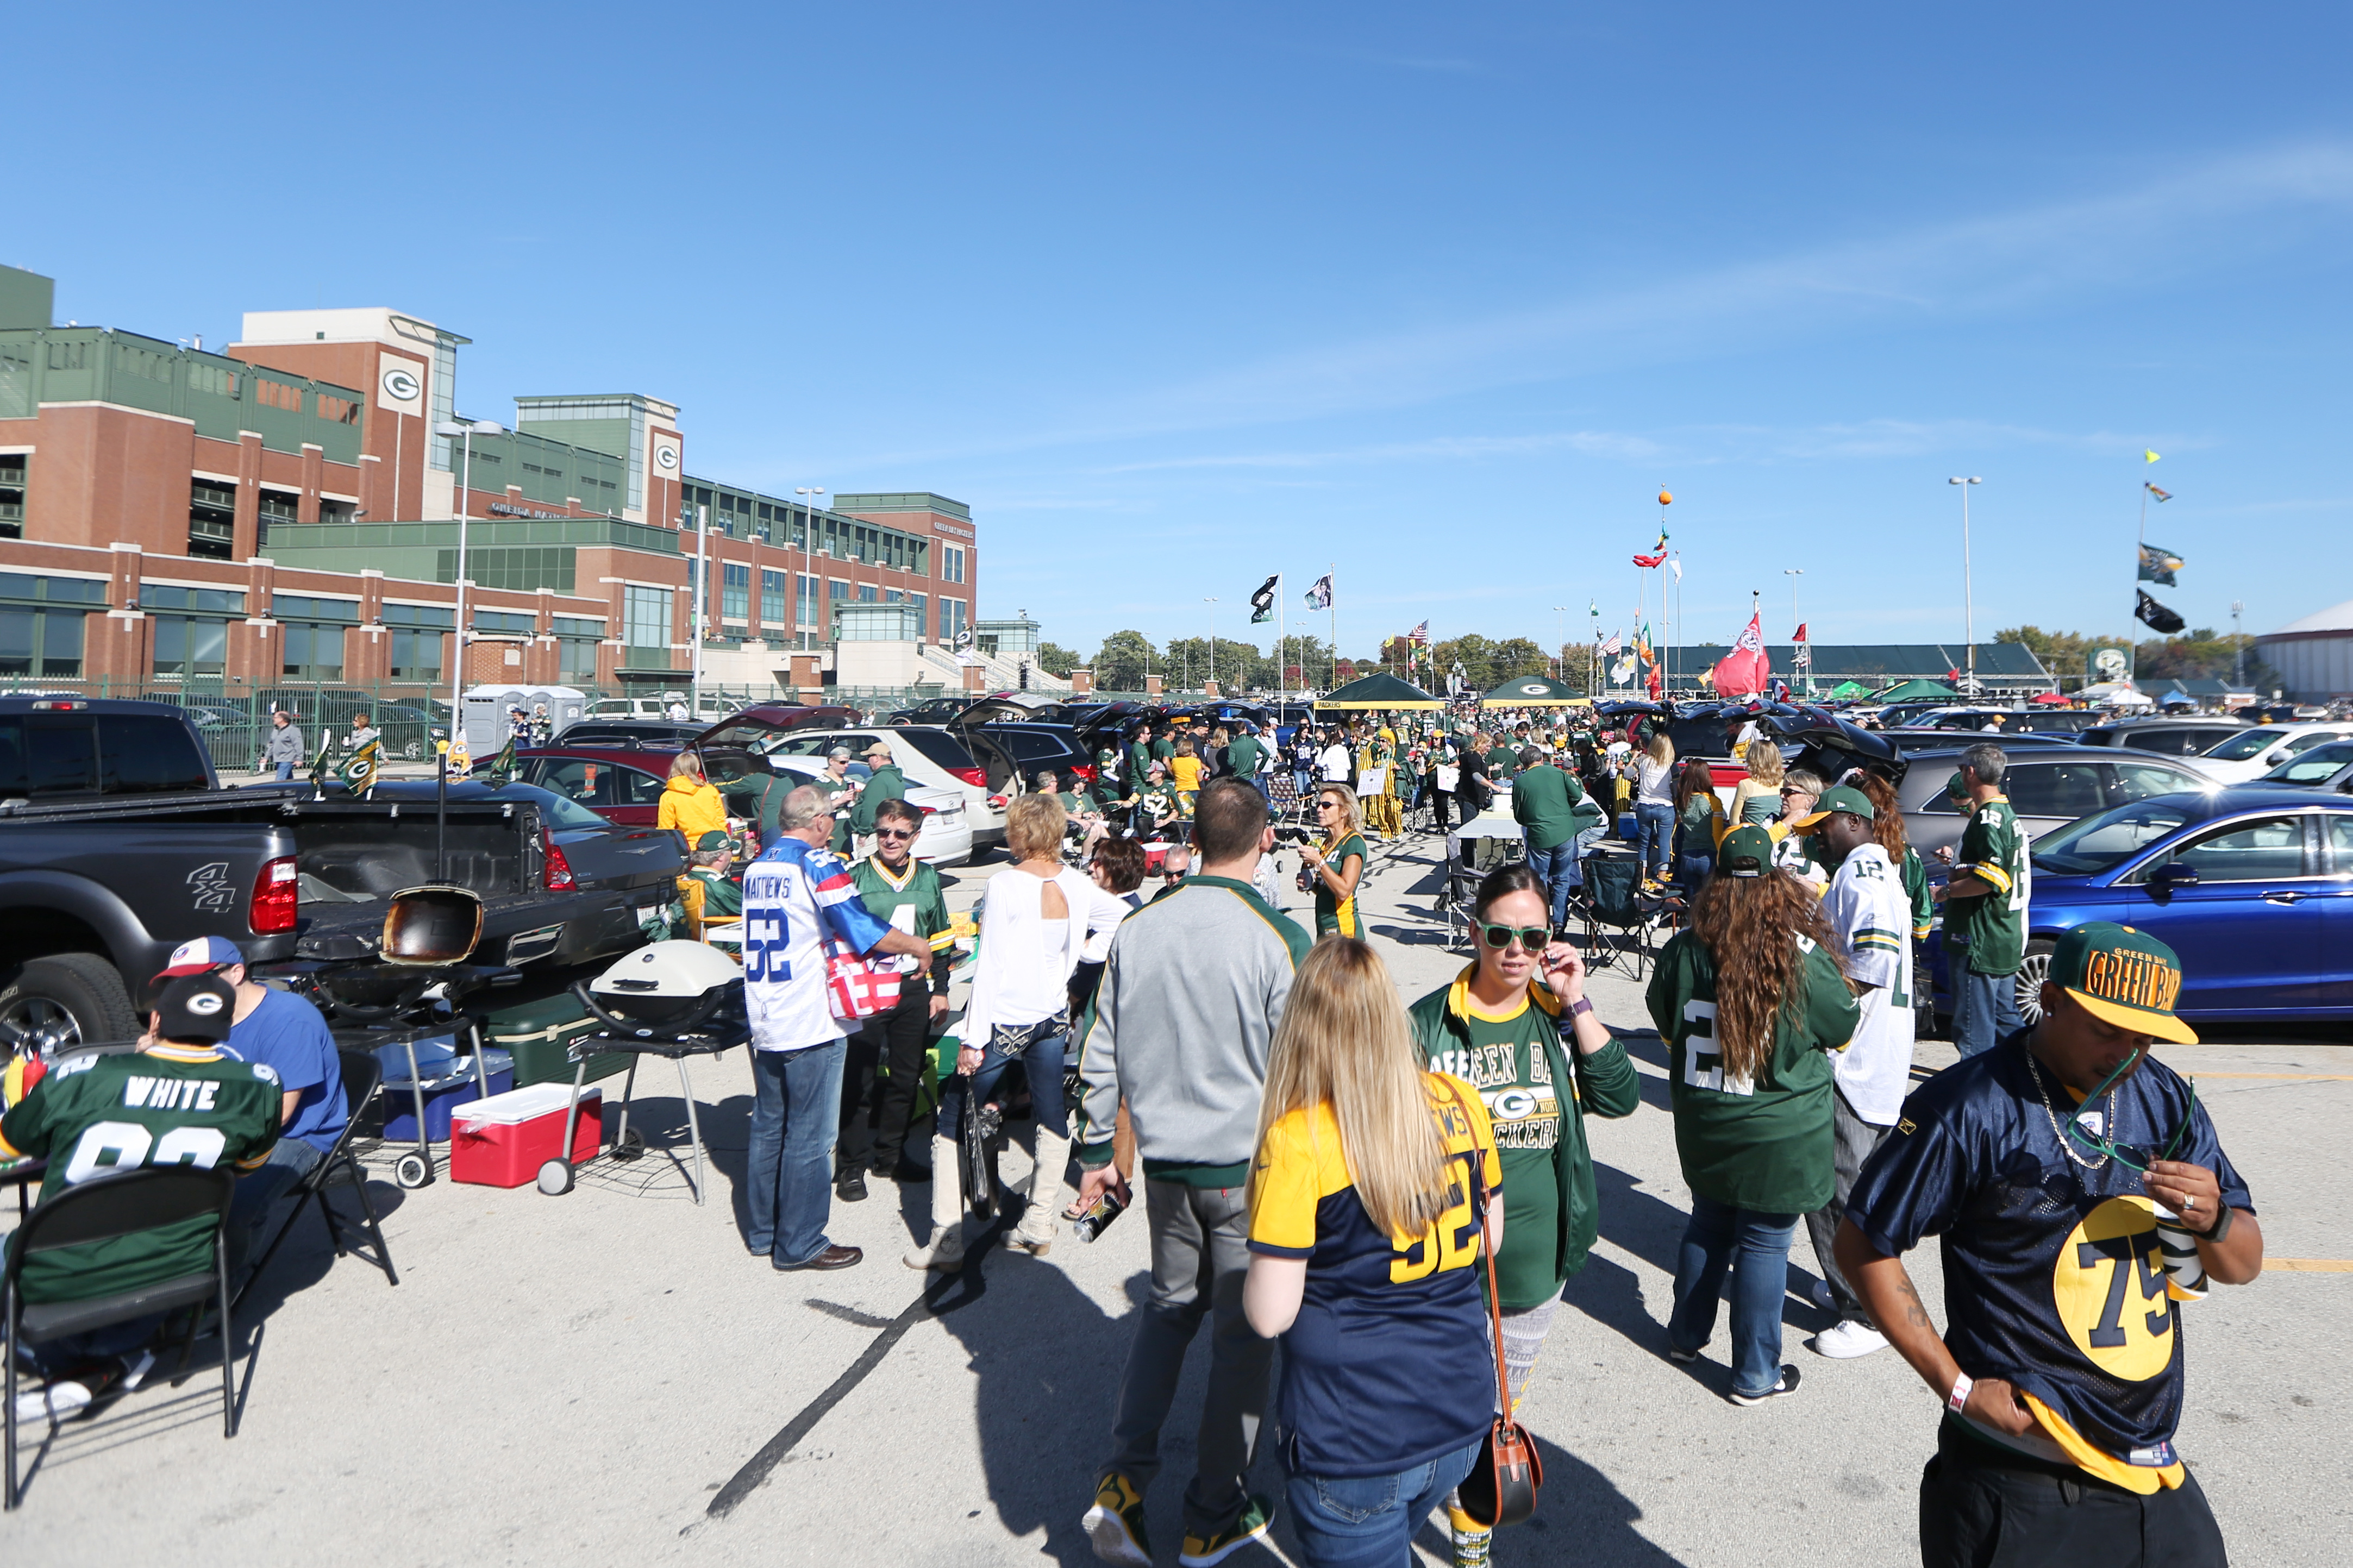 NFL: OCT 16 Cowboys at Packers